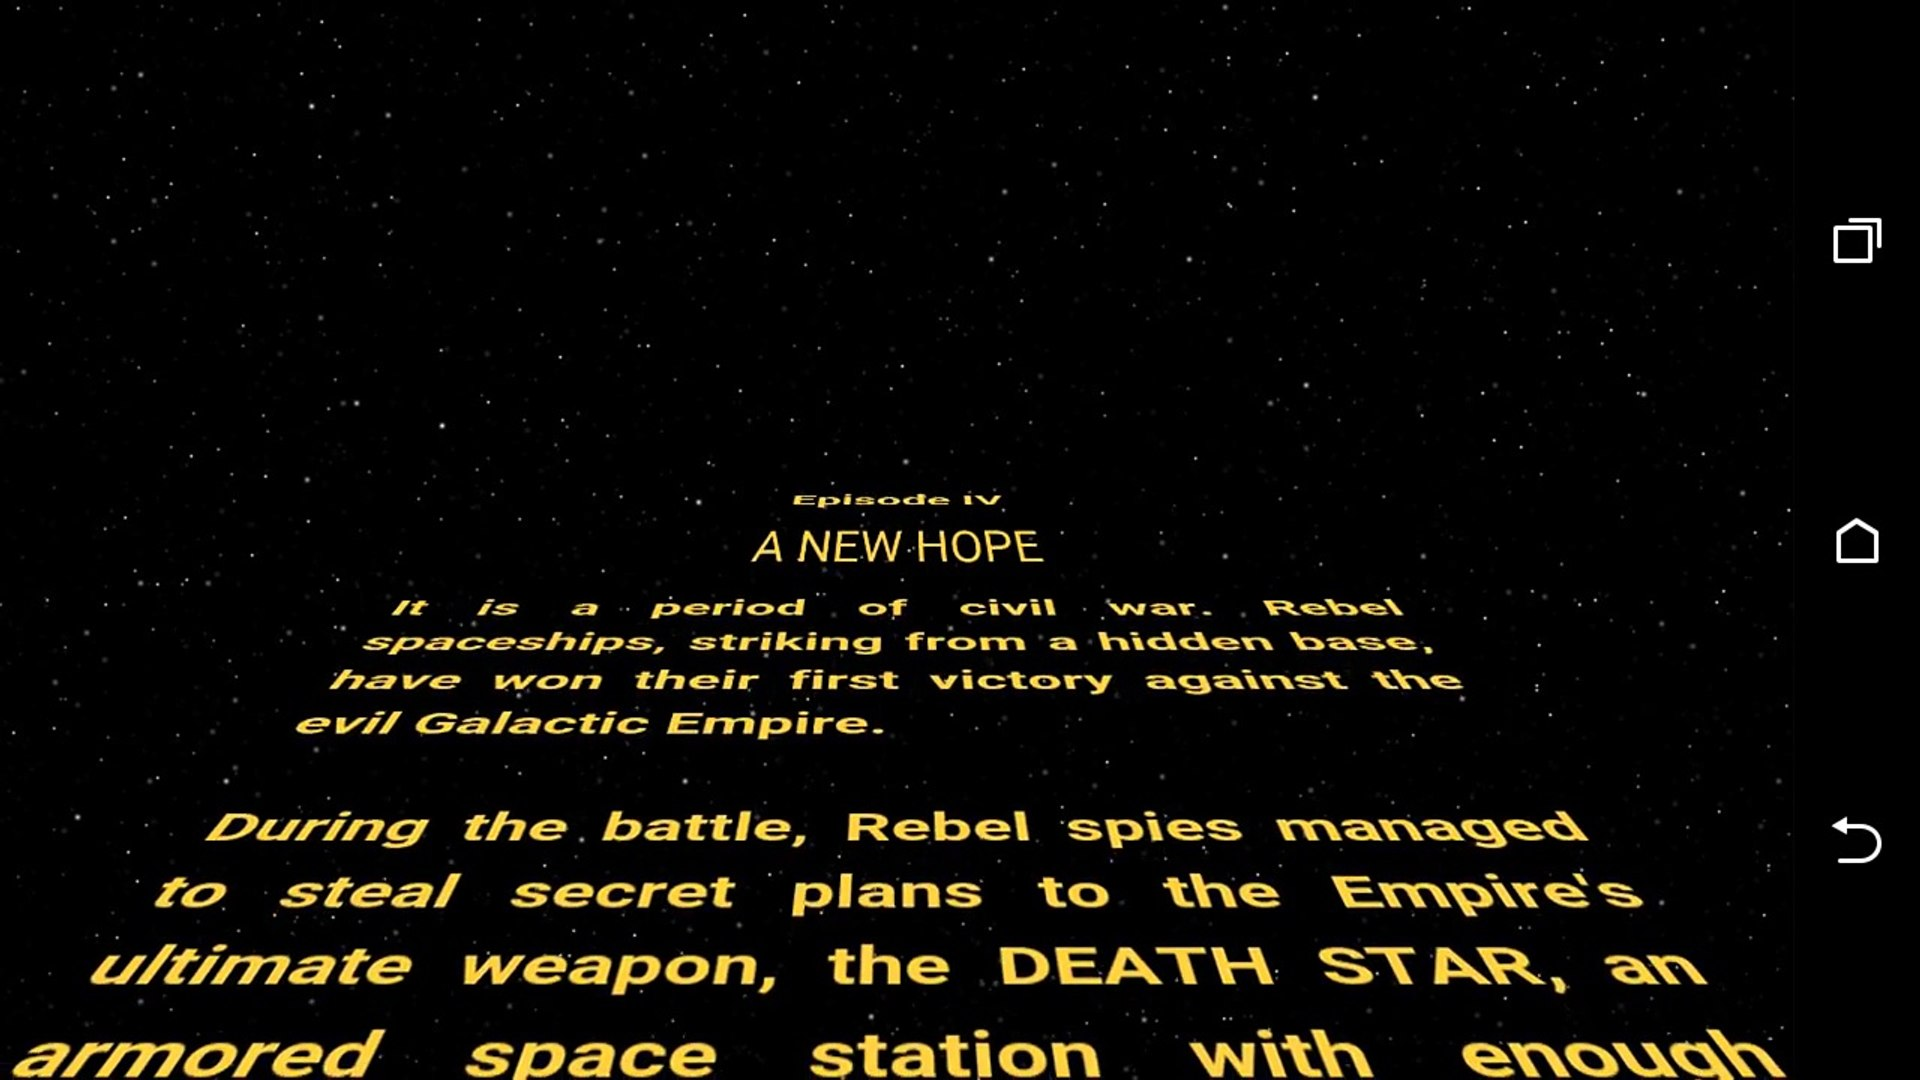 Star Wars Episode Iv A New Hope Opening Crawl Video Dailymotion